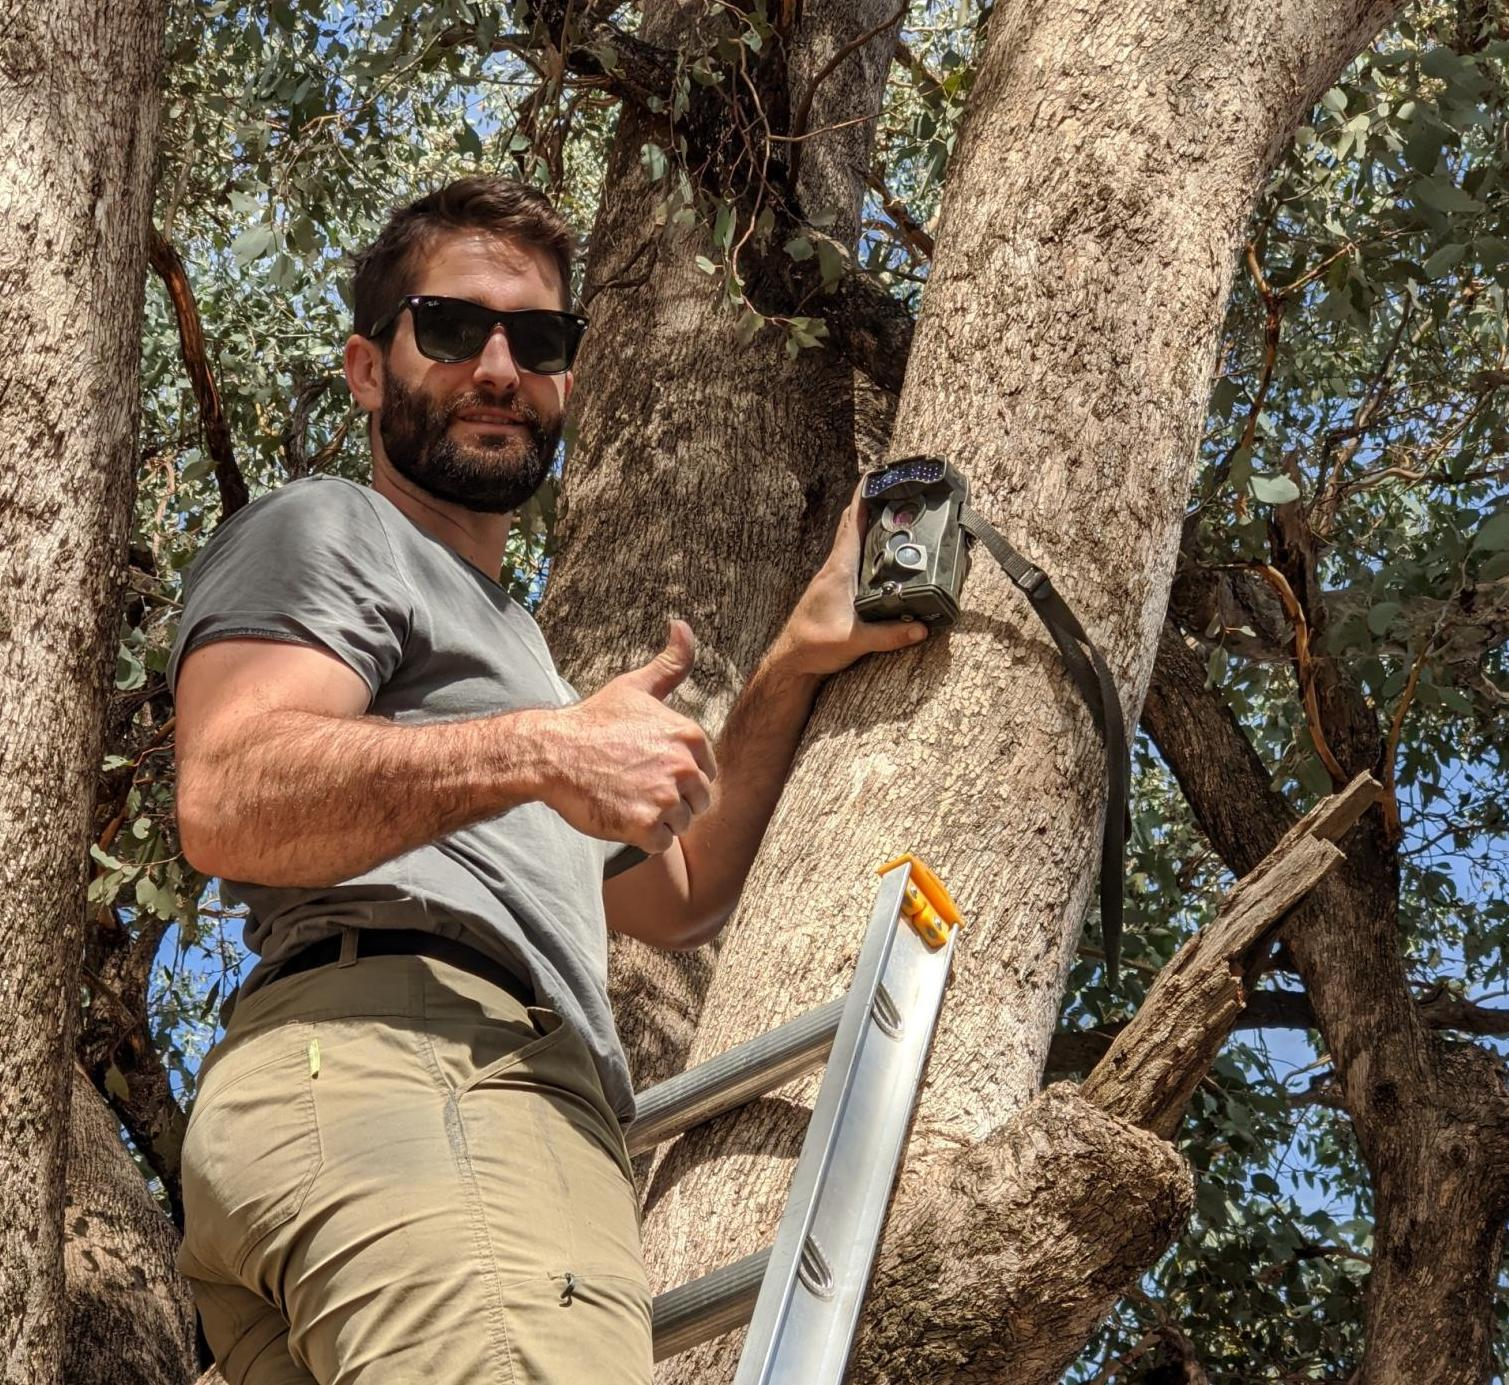 Albury Conservation Company's ecologist Dylan McWhinney installing a motion-sensing camera to monitor Squirrel Gliders in Thurgoona, NSW (2020)